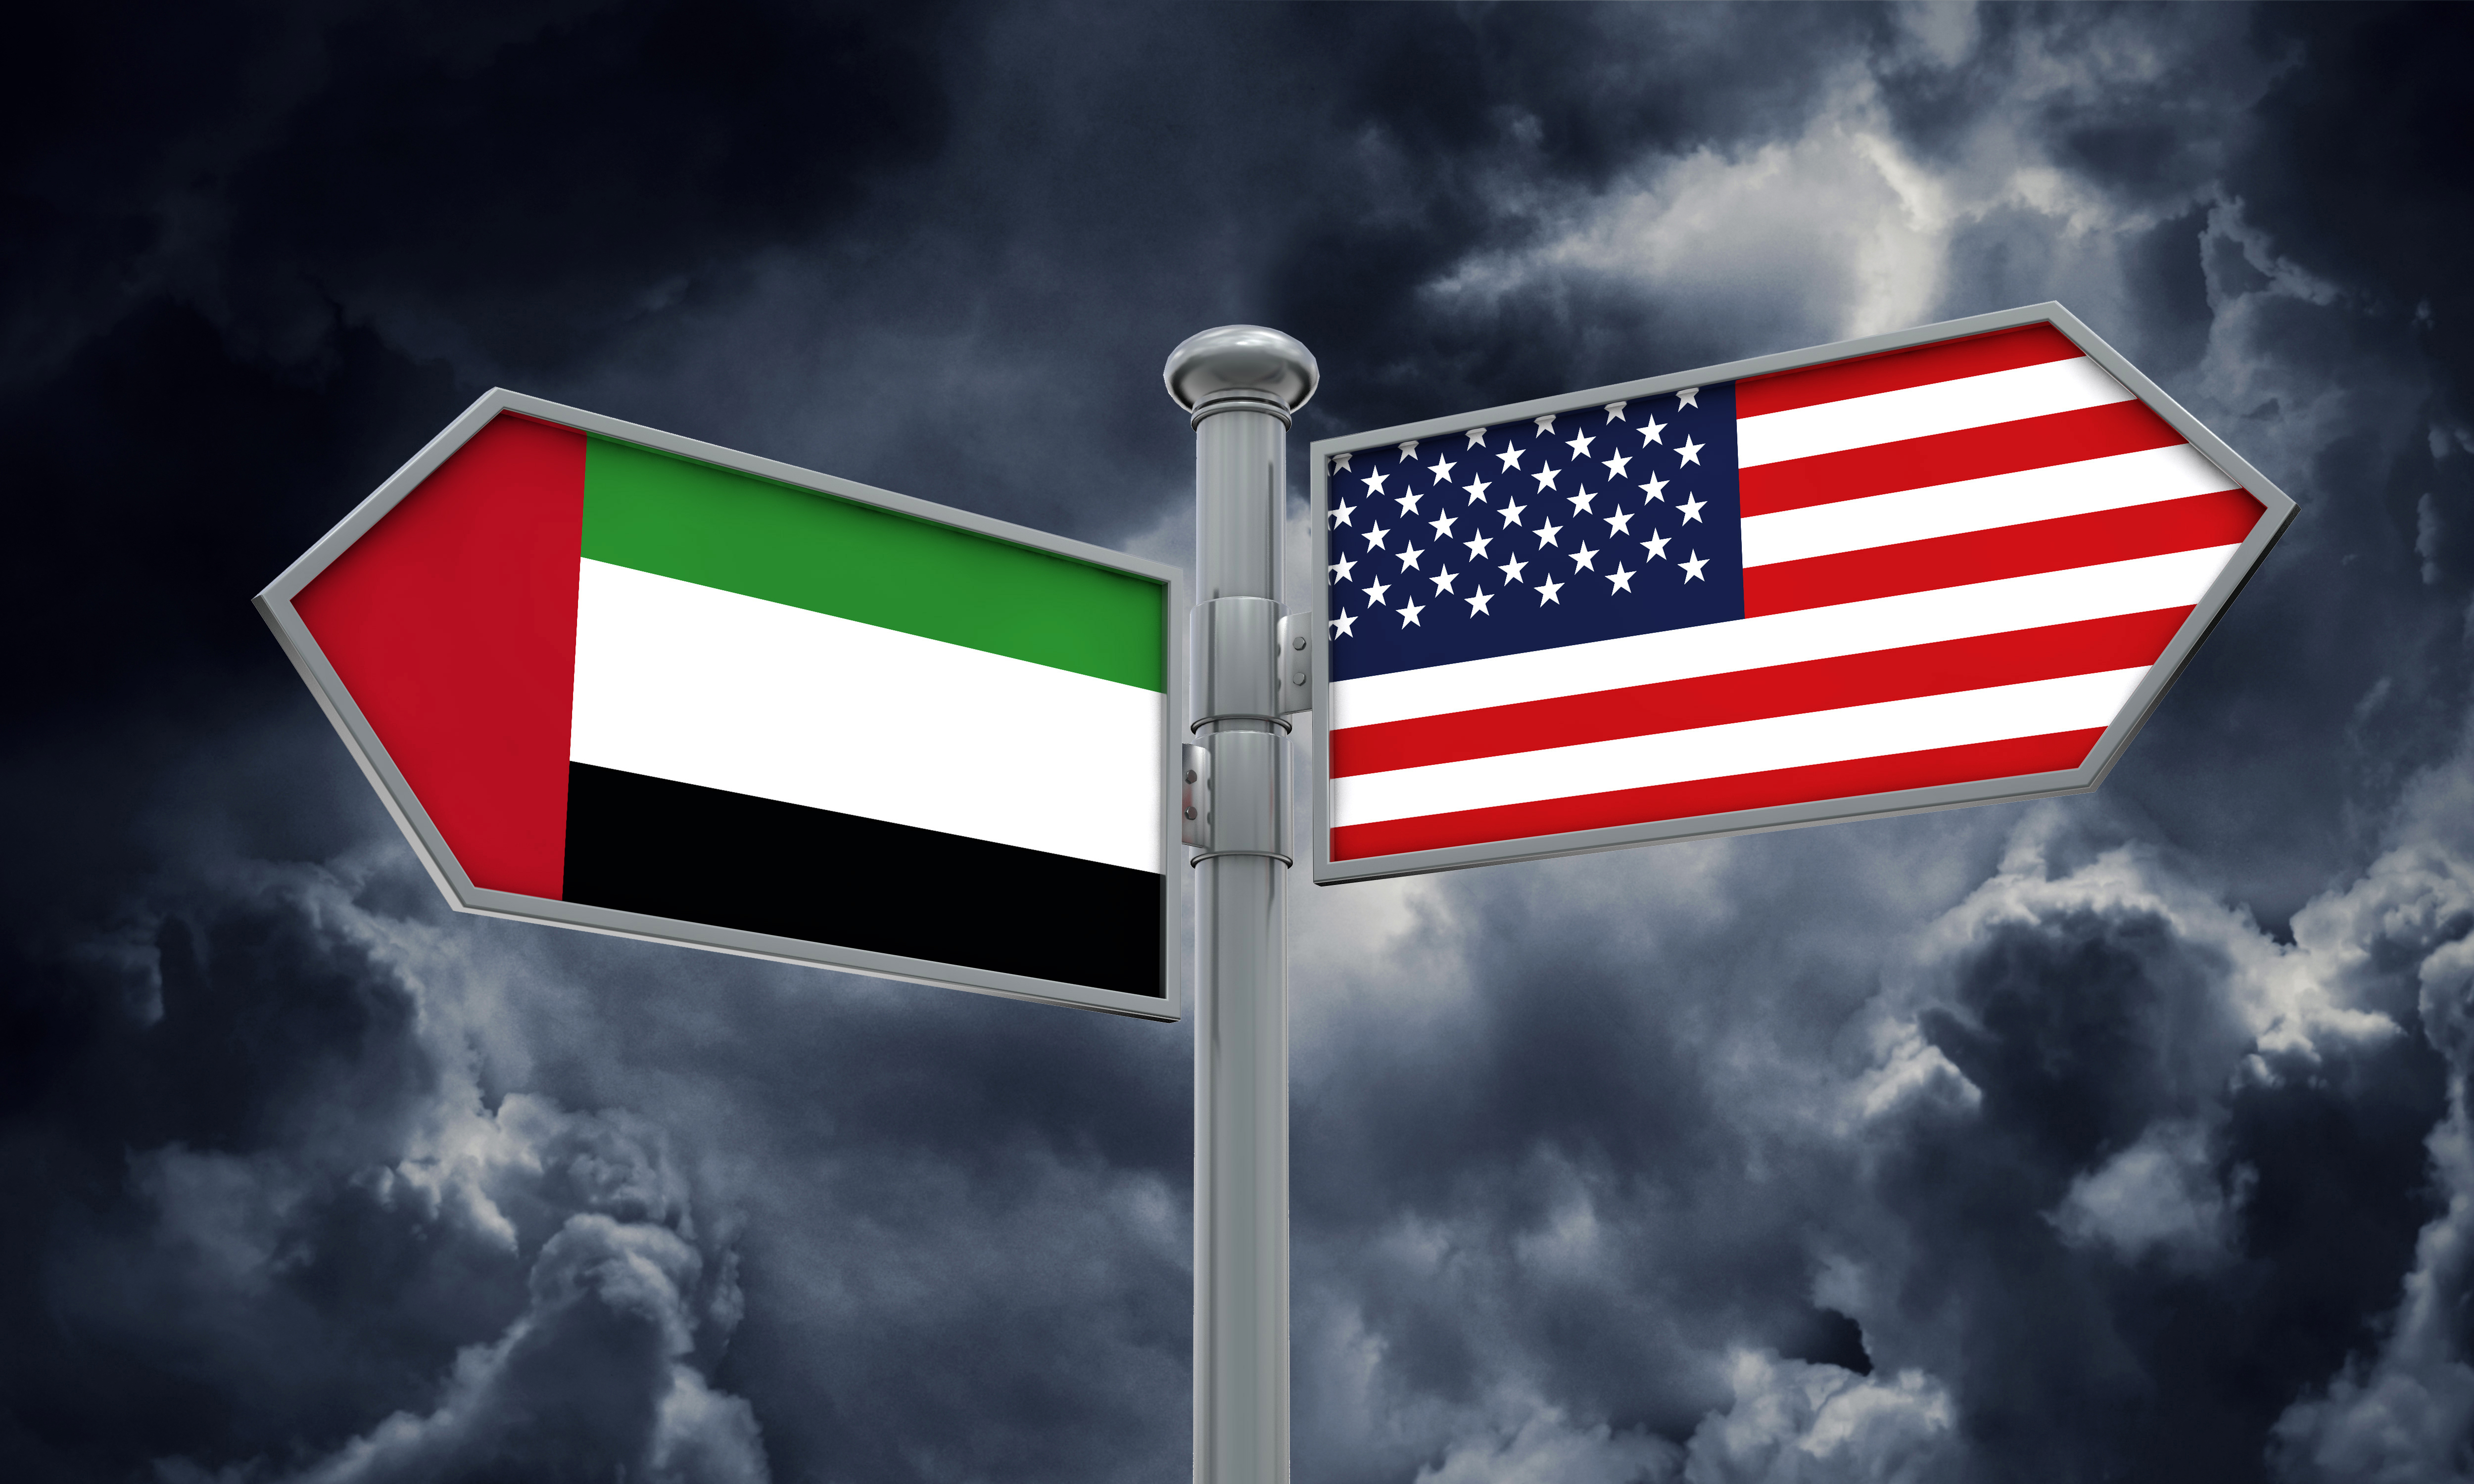 Is the UAE's alliance with the US falling apart? 5 Geopolitical Effects You Need to Know